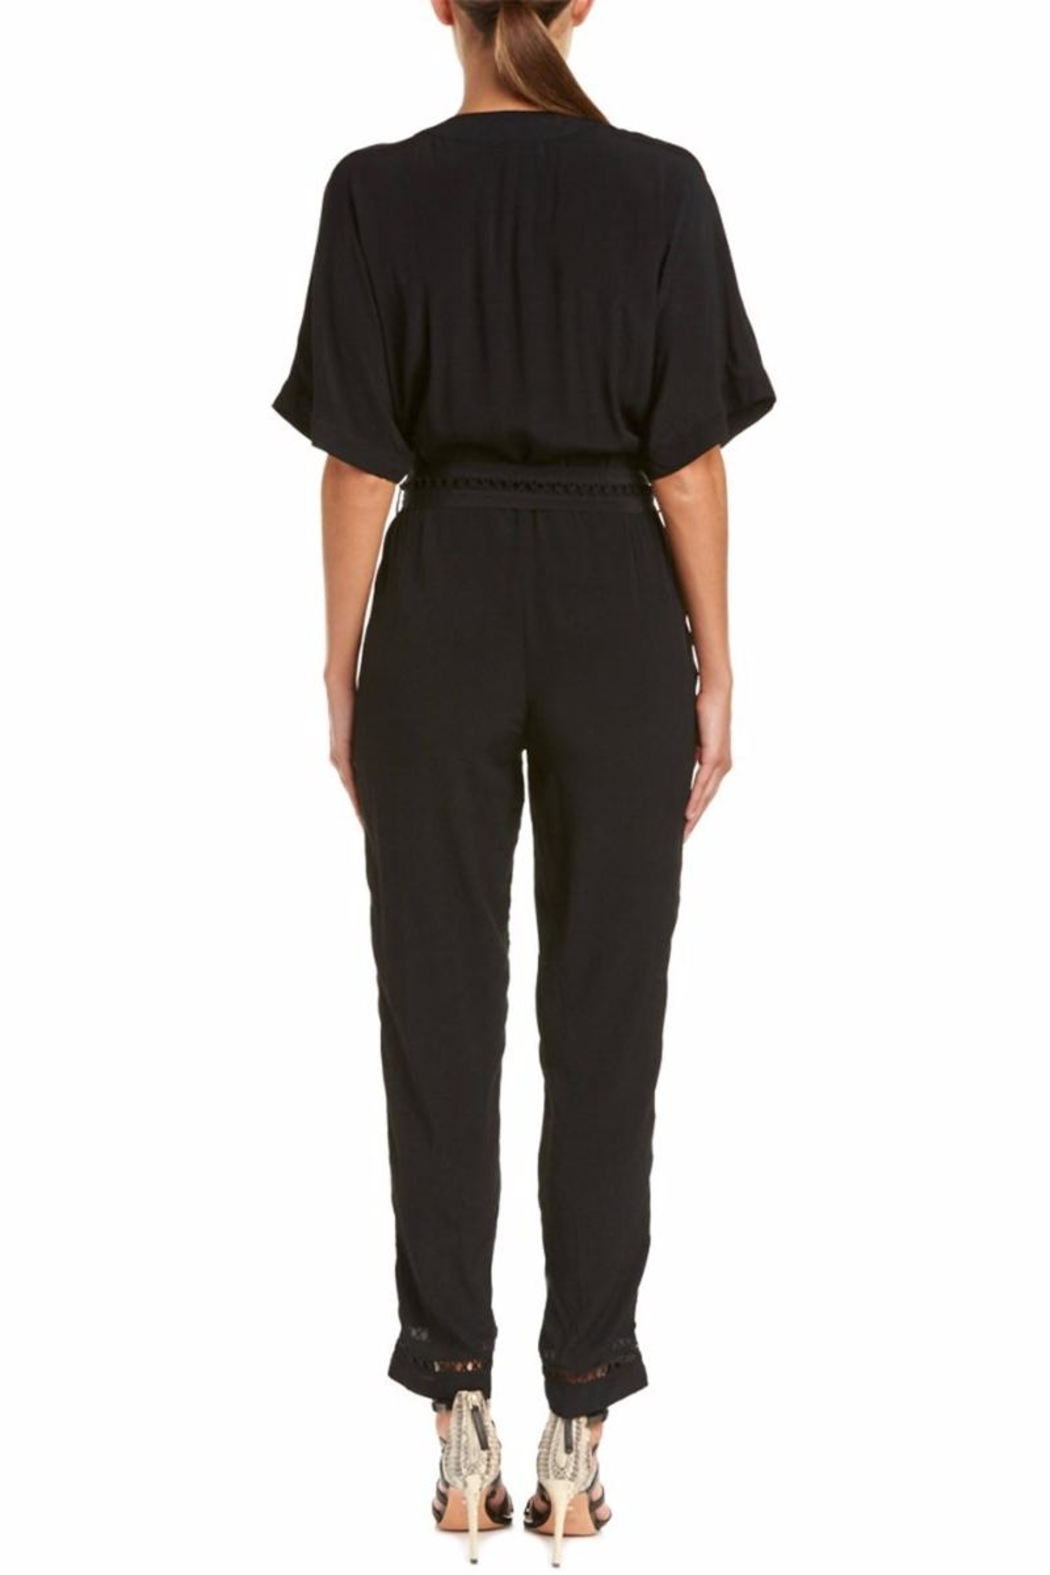 On The Road Lattice-Stitch Jumpsuit - Front Full Image